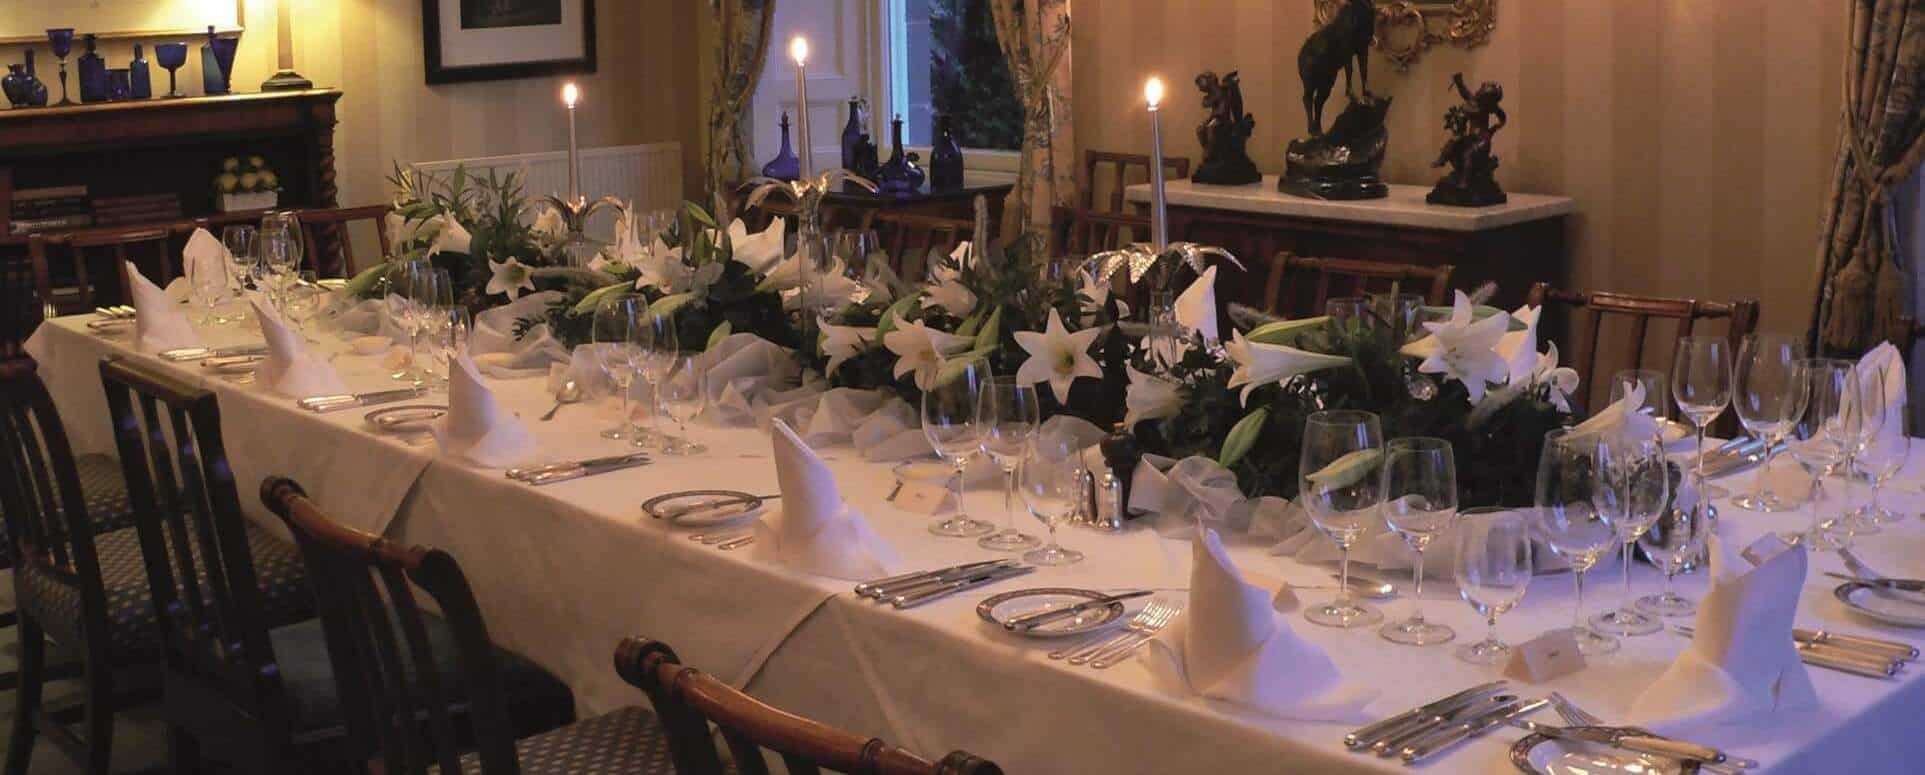 Private Dining at Kinloch House